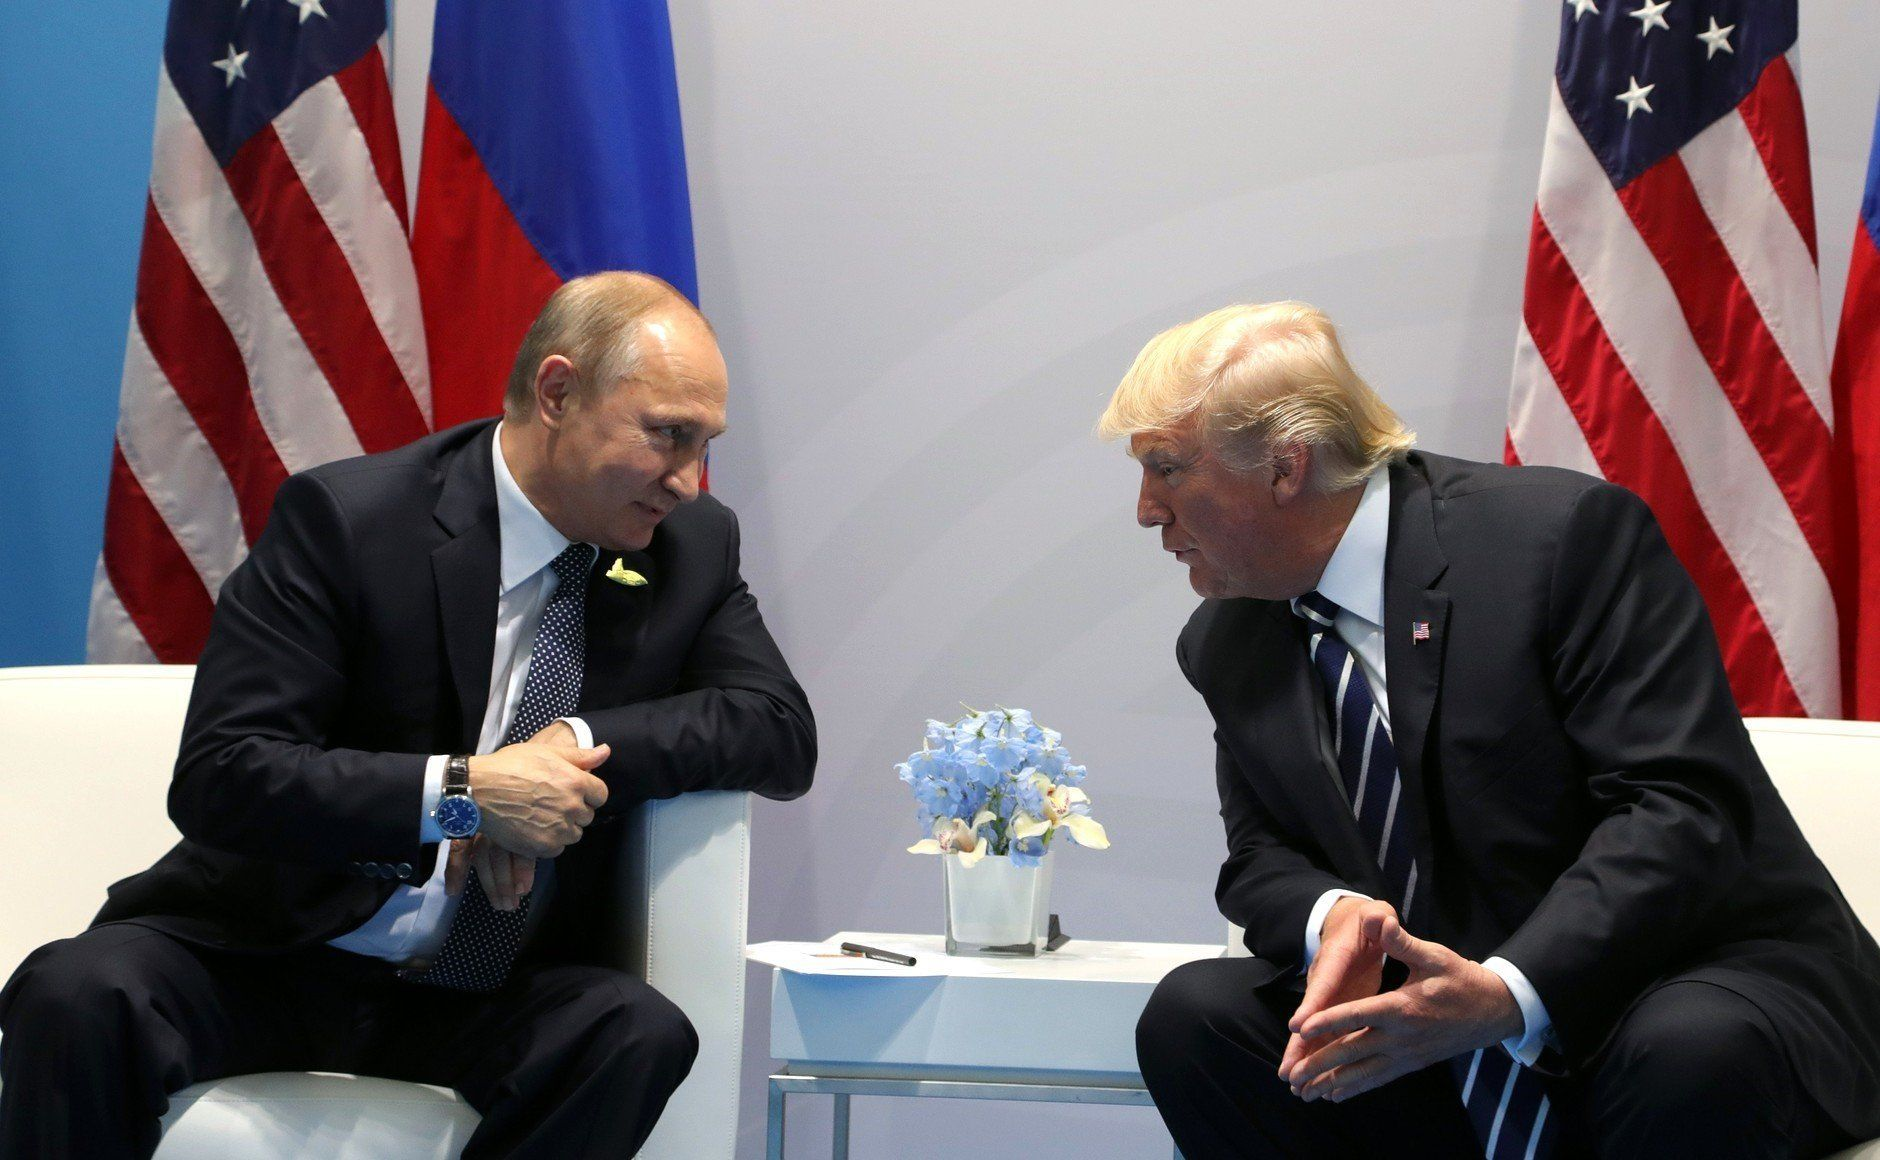 HAMBURG, GERMANY - JULY 7: (----EDITORIAL USE ONLY  MANDATORY CREDIT - ' RUSSIAN PRESIDENTIAL PRESS AND INFORMATION OFFICE / HANDOUT' - NO MARKETING NO ADVERTISING CAMPAIGNS - DISTRIBUTED AS A SERVICE TO CLIENTS----)  Russia's President Vladimir Putin (L) and US President Donald Trump (R) hold a bilateral meeting on the sidelines of the  G20 summit in Hamburg, Germany, on July 7, 2017.  (Photo by Russian Presidential Press and Information Office/Anadolu Agency/Getty Images)